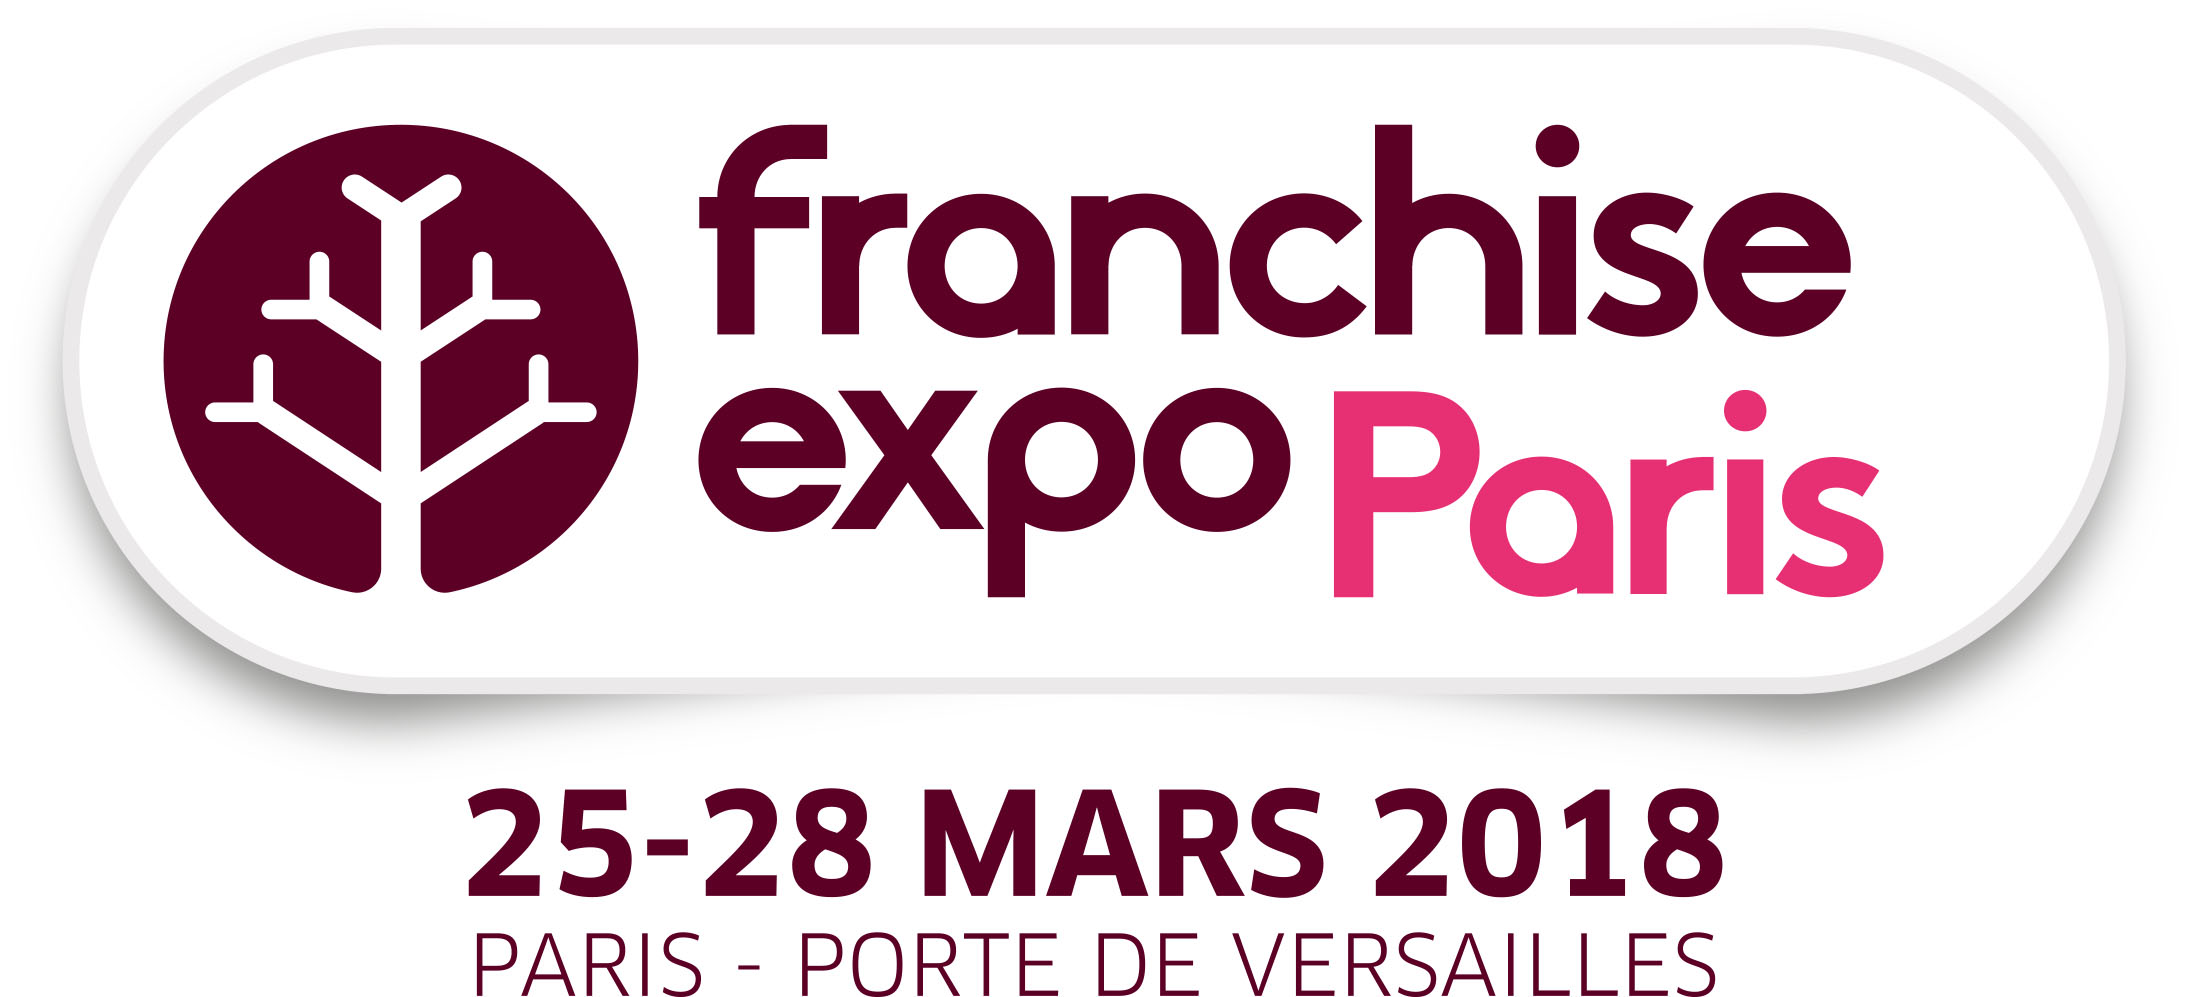 Salon De La Franchise à Paris Swimcenter Au Salon De La Franchise 2018 Swimcenter